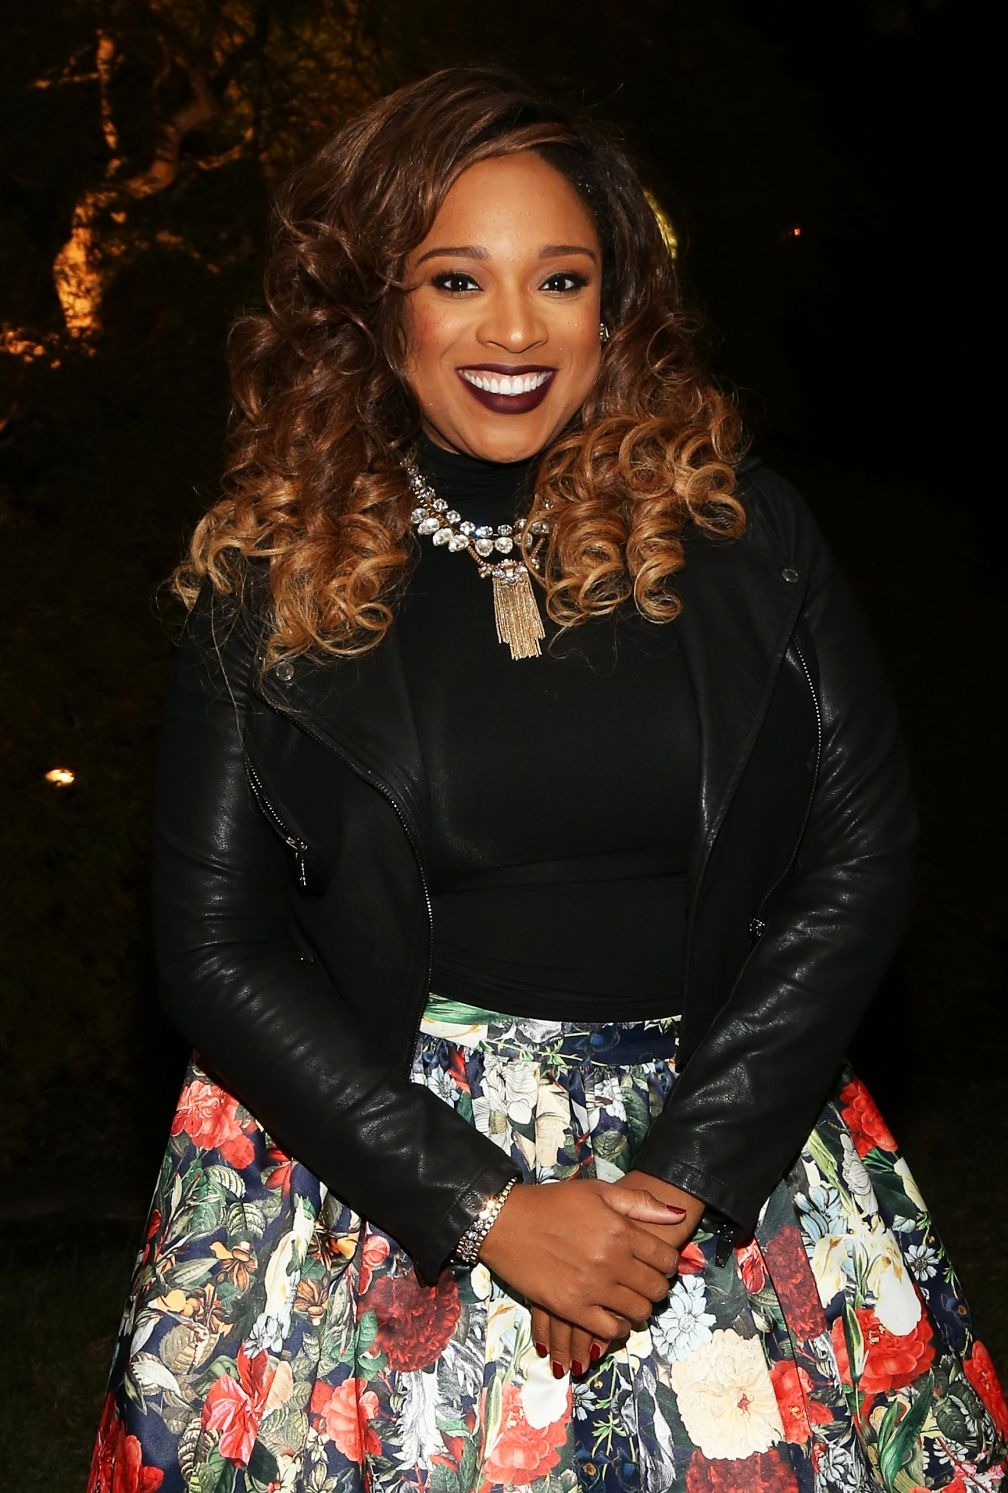 Kierra Sheard Looks Beautiful As She Gets Ready To Perform At The ...